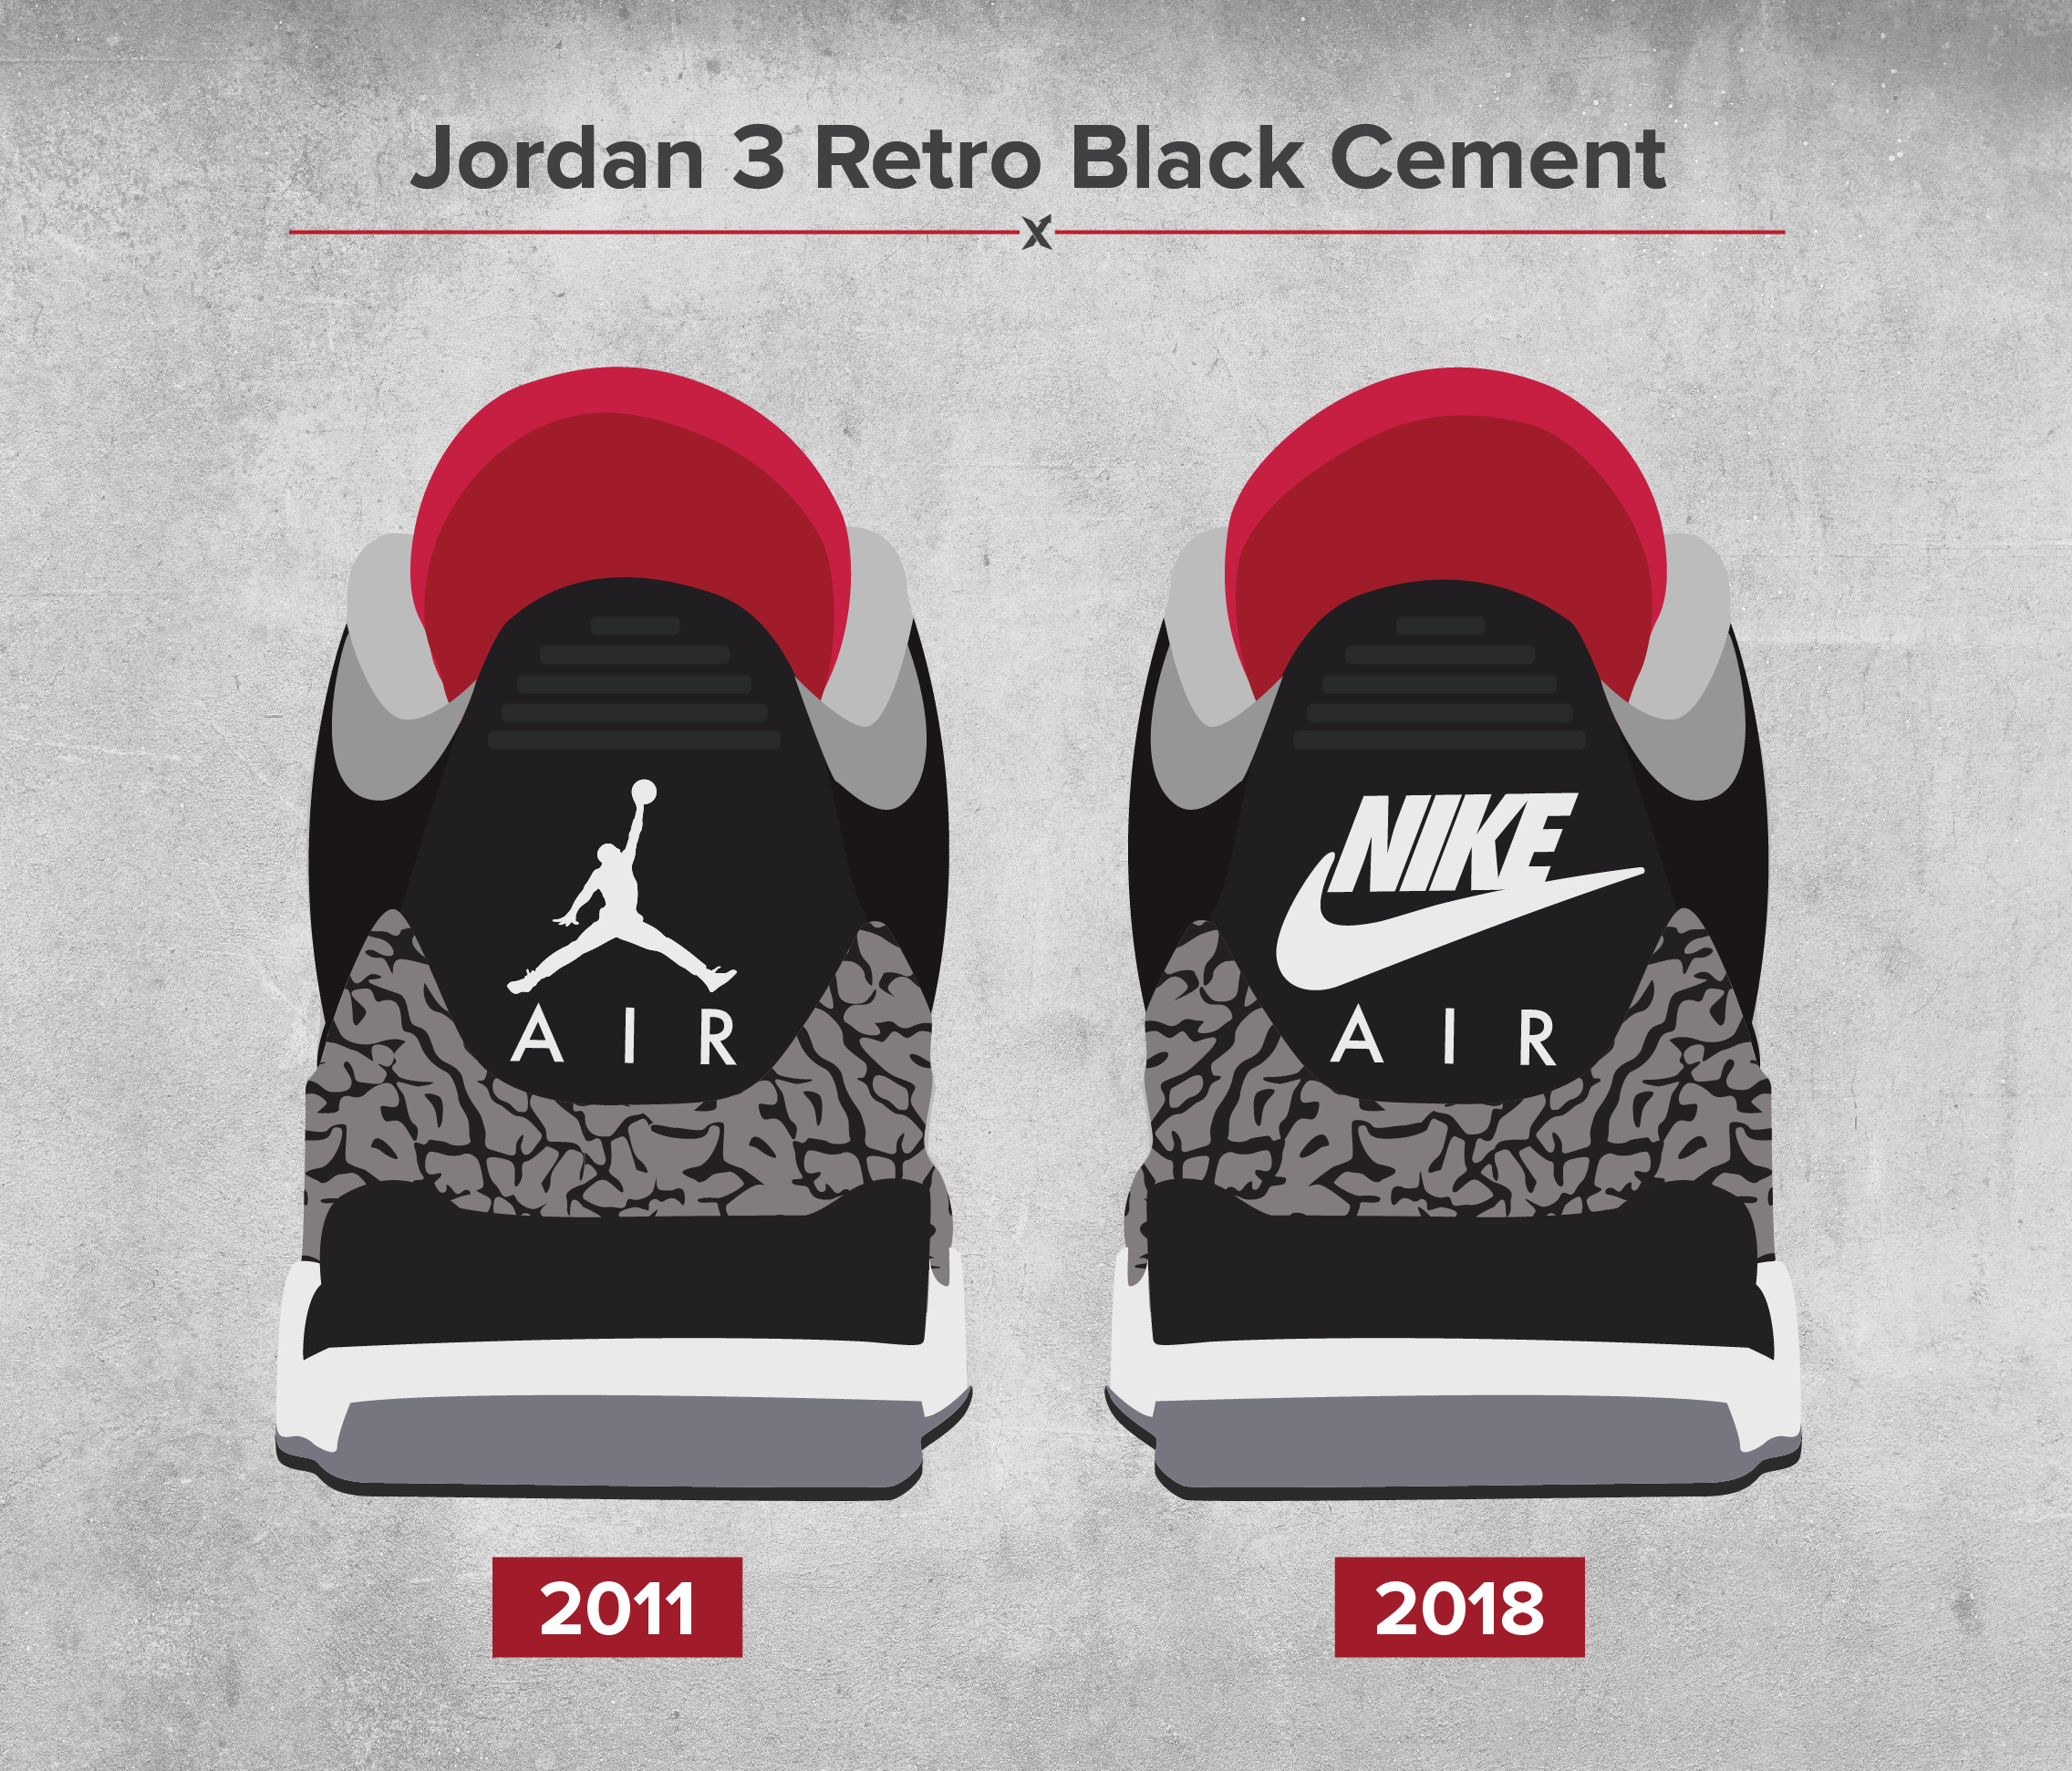 timeless design 7df94 00f3d Air Jordan 3 Black Cement 2018 Release - How will it sell